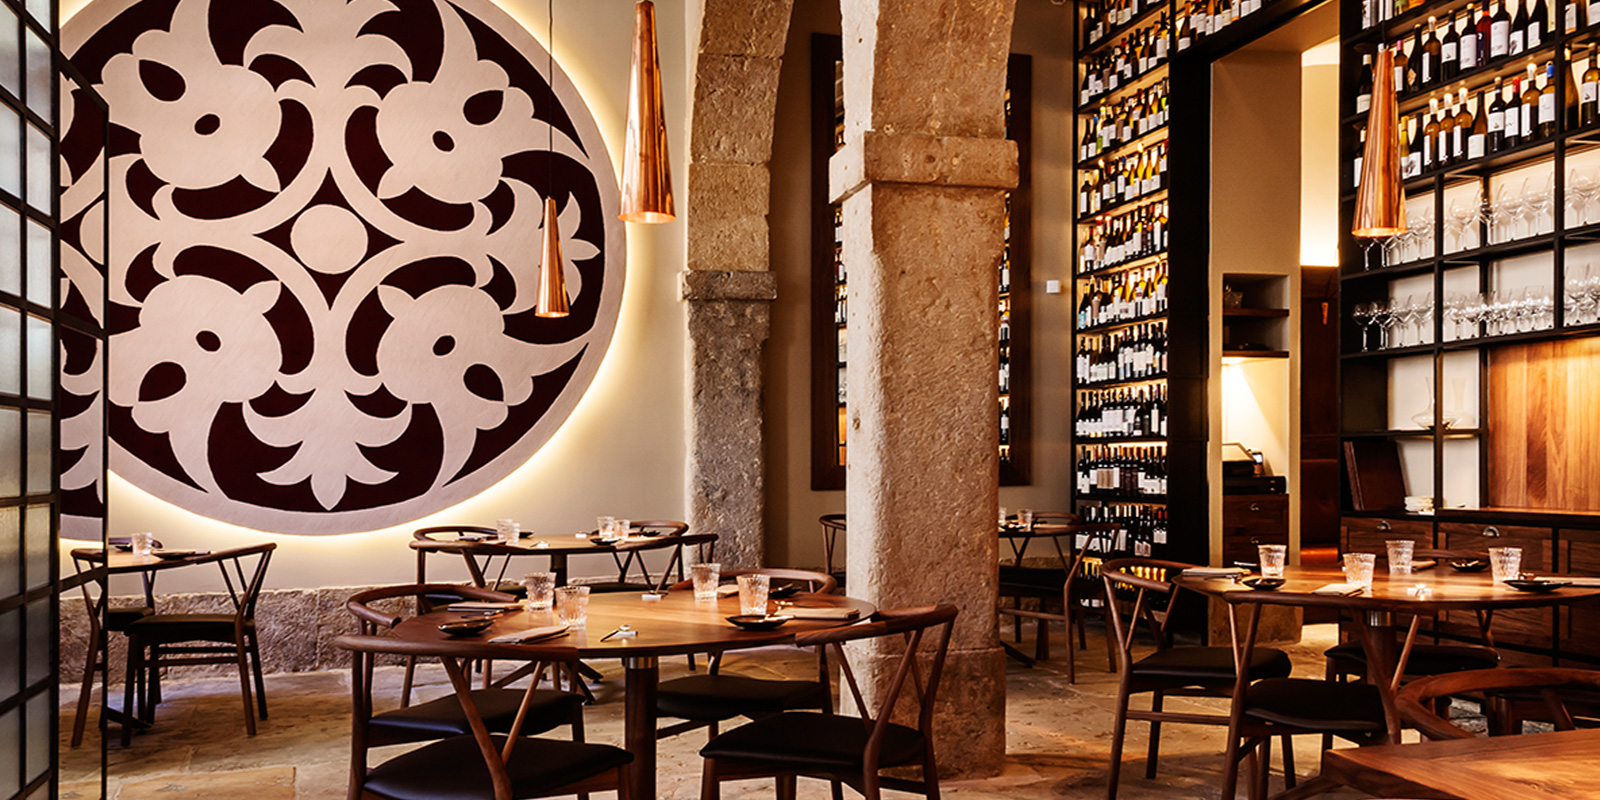 Alma Restaurant Lisbon - Henrique sa Pessoa - Design Lovers Guide to Portugal - Things to Do In Portugal for Architecture, Art & Design Lovers - best restaurants in portugal - best restaurants in lisbon - most beautiful restaurants in portugal - most beautiful restaurants in lisbon